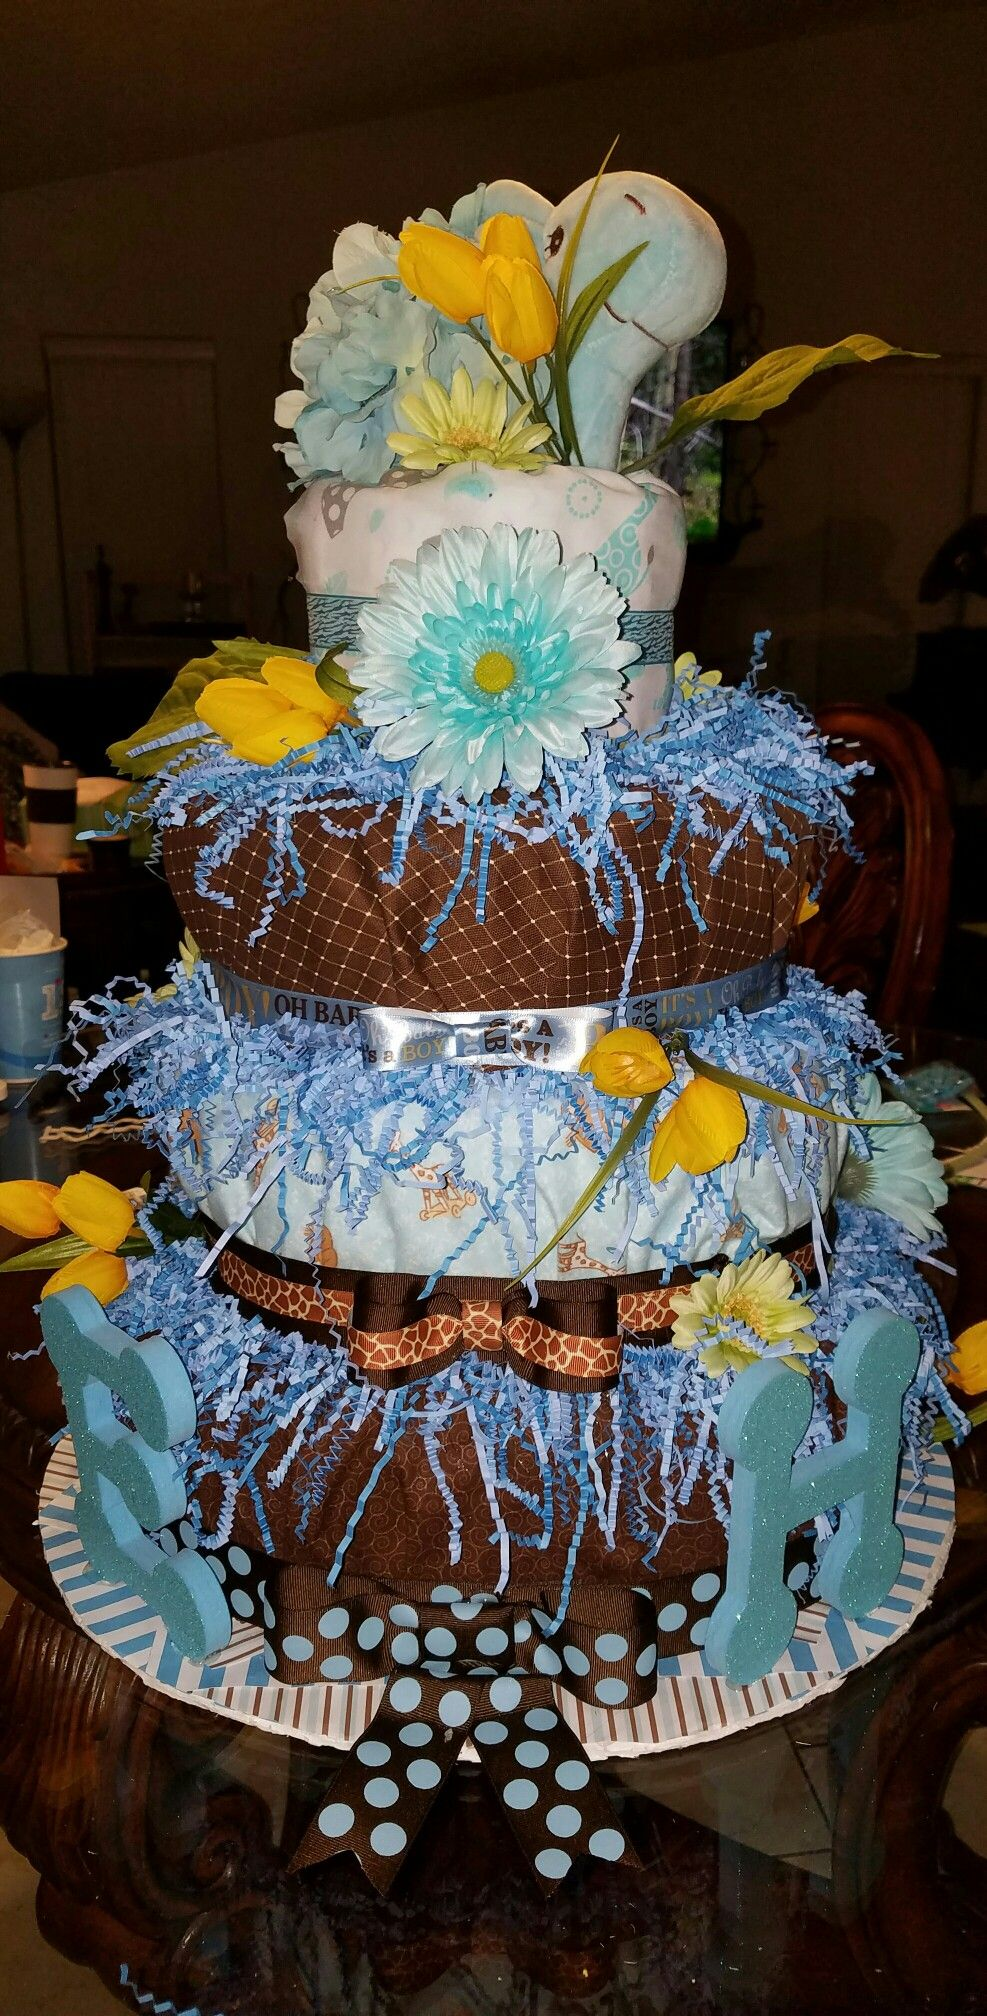 Baby boy diaper cake.  Chocolate brown and baby blue. Giraffe and flowers. By J. Lacourse